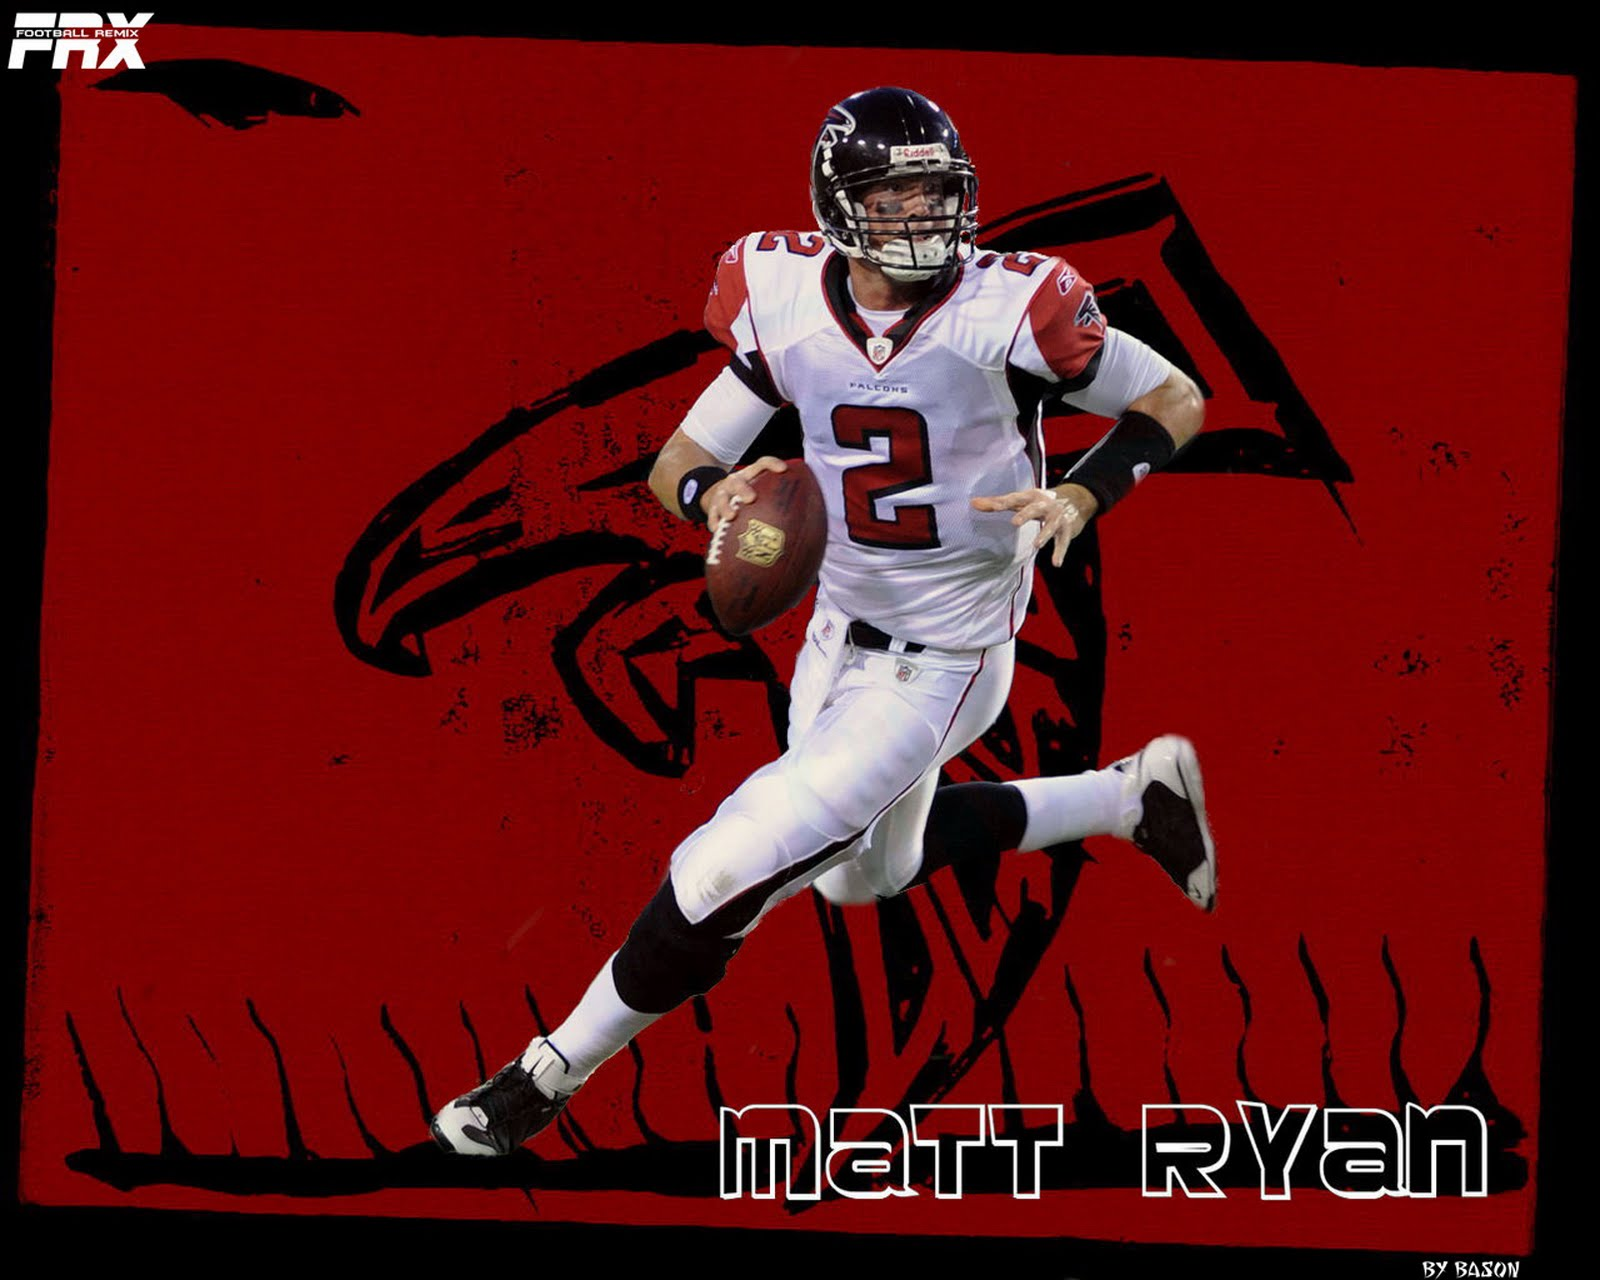 http://4.bp.blogspot.com/_SPY5-z18DBU/TS7IyCTPafI/AAAAAAAAAEw/fQ8zWycMT5U/s1600/matt_ryan_wallpaper_atlanta_falcons_1600x1280.jpeg